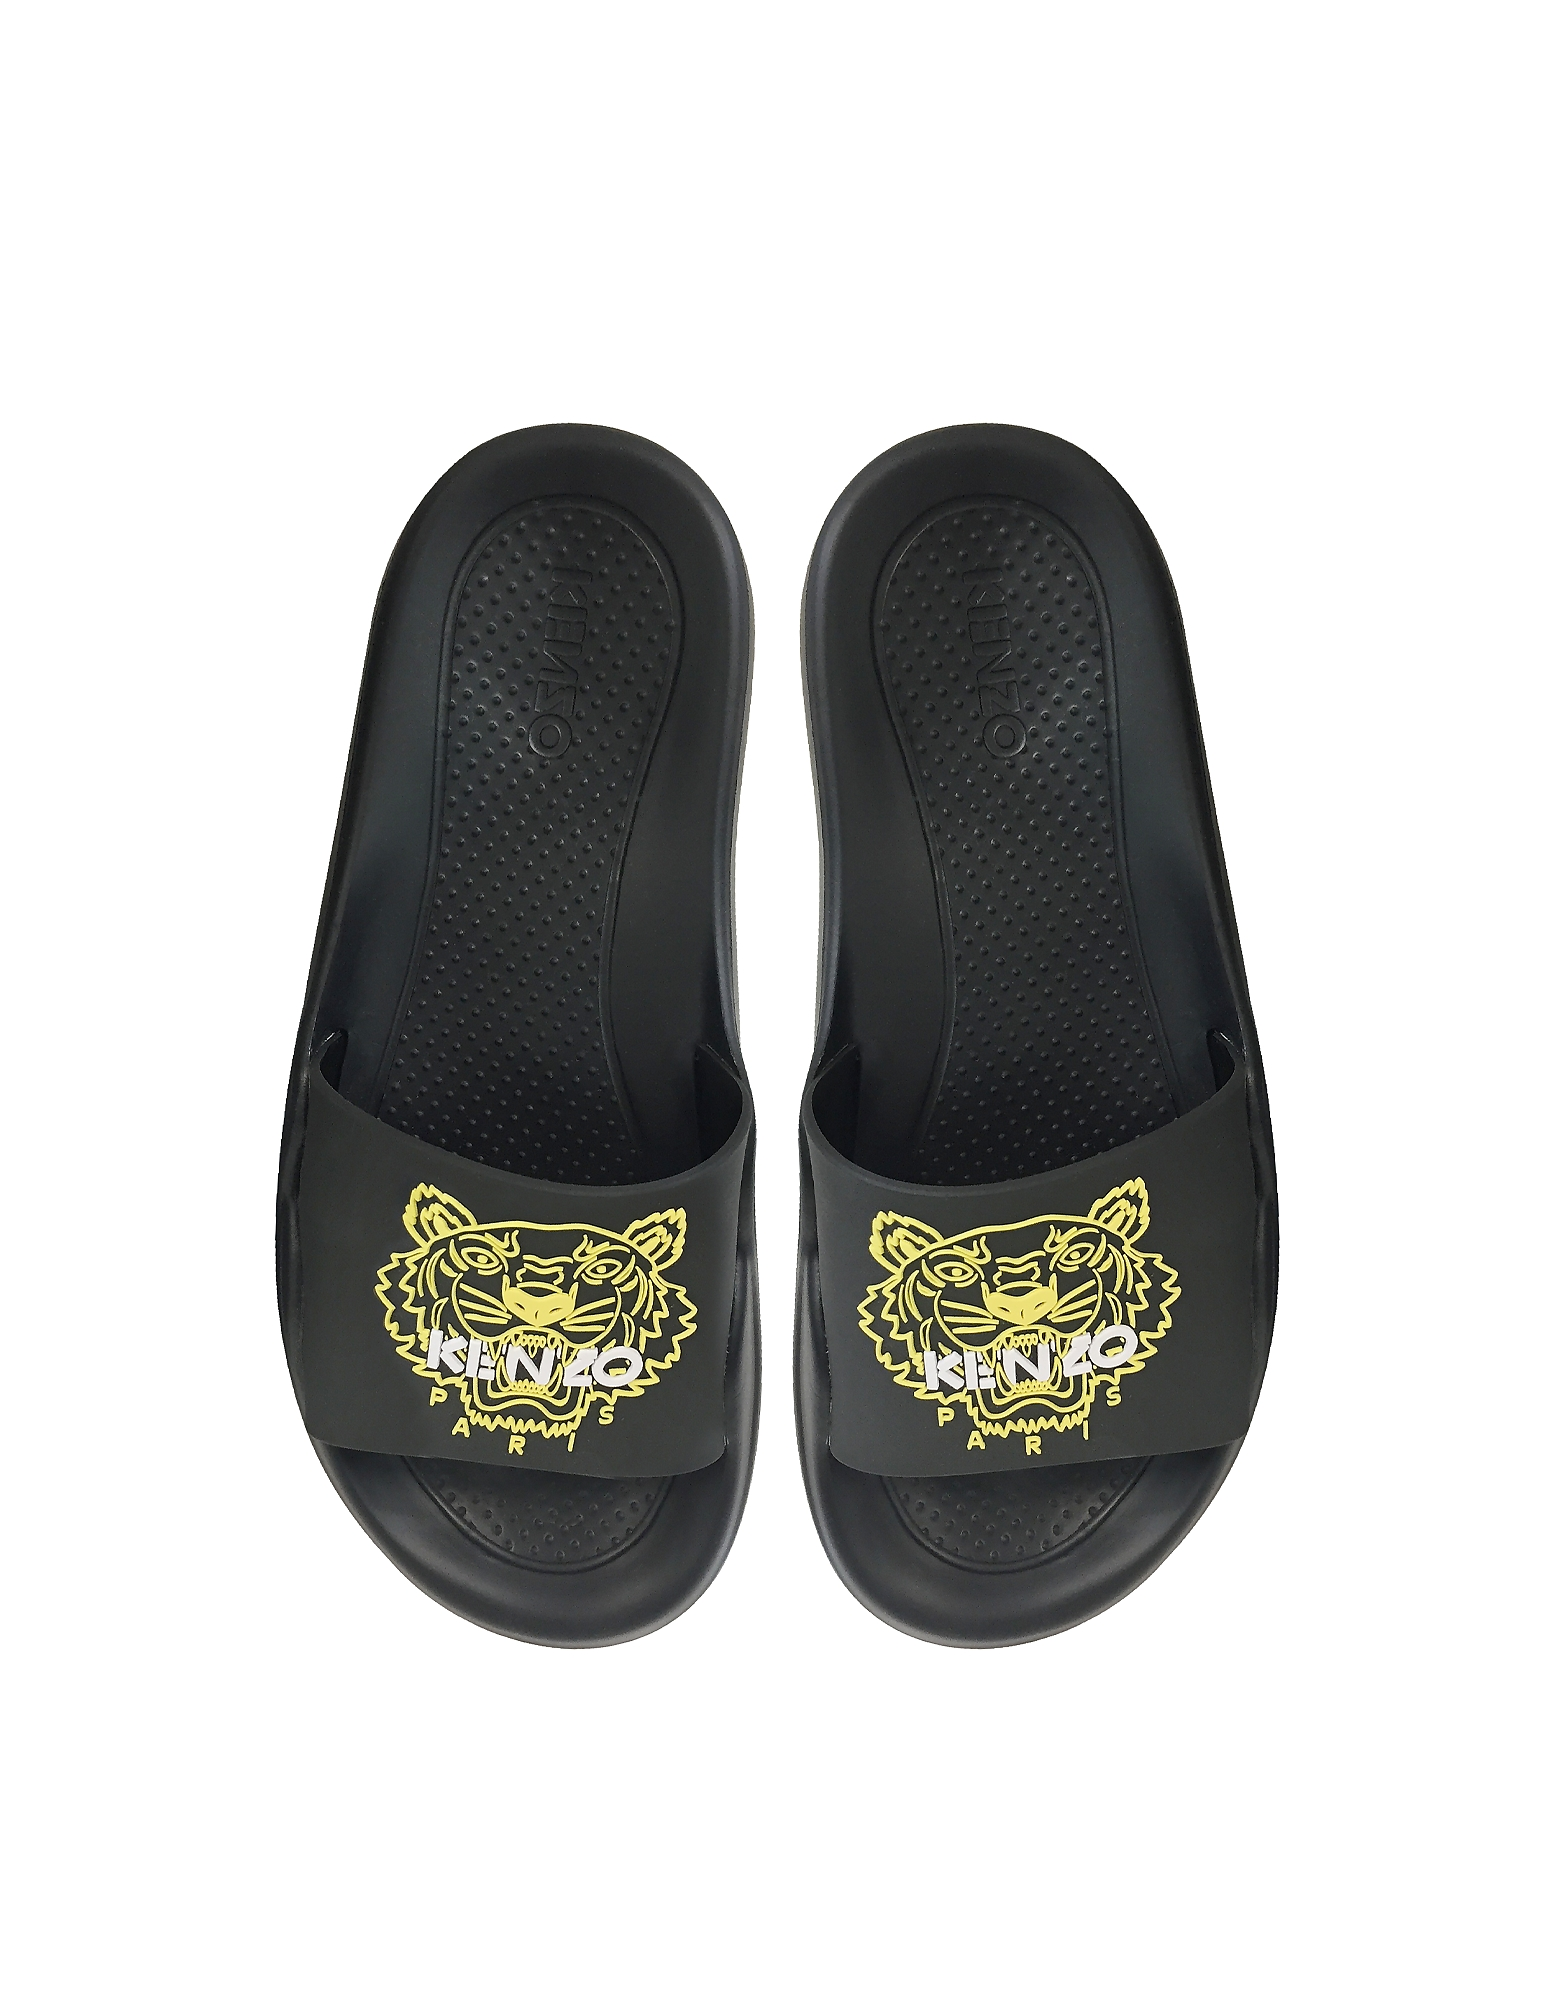 Kenzo Shoes, Black Tiger Women's Flat Sandals